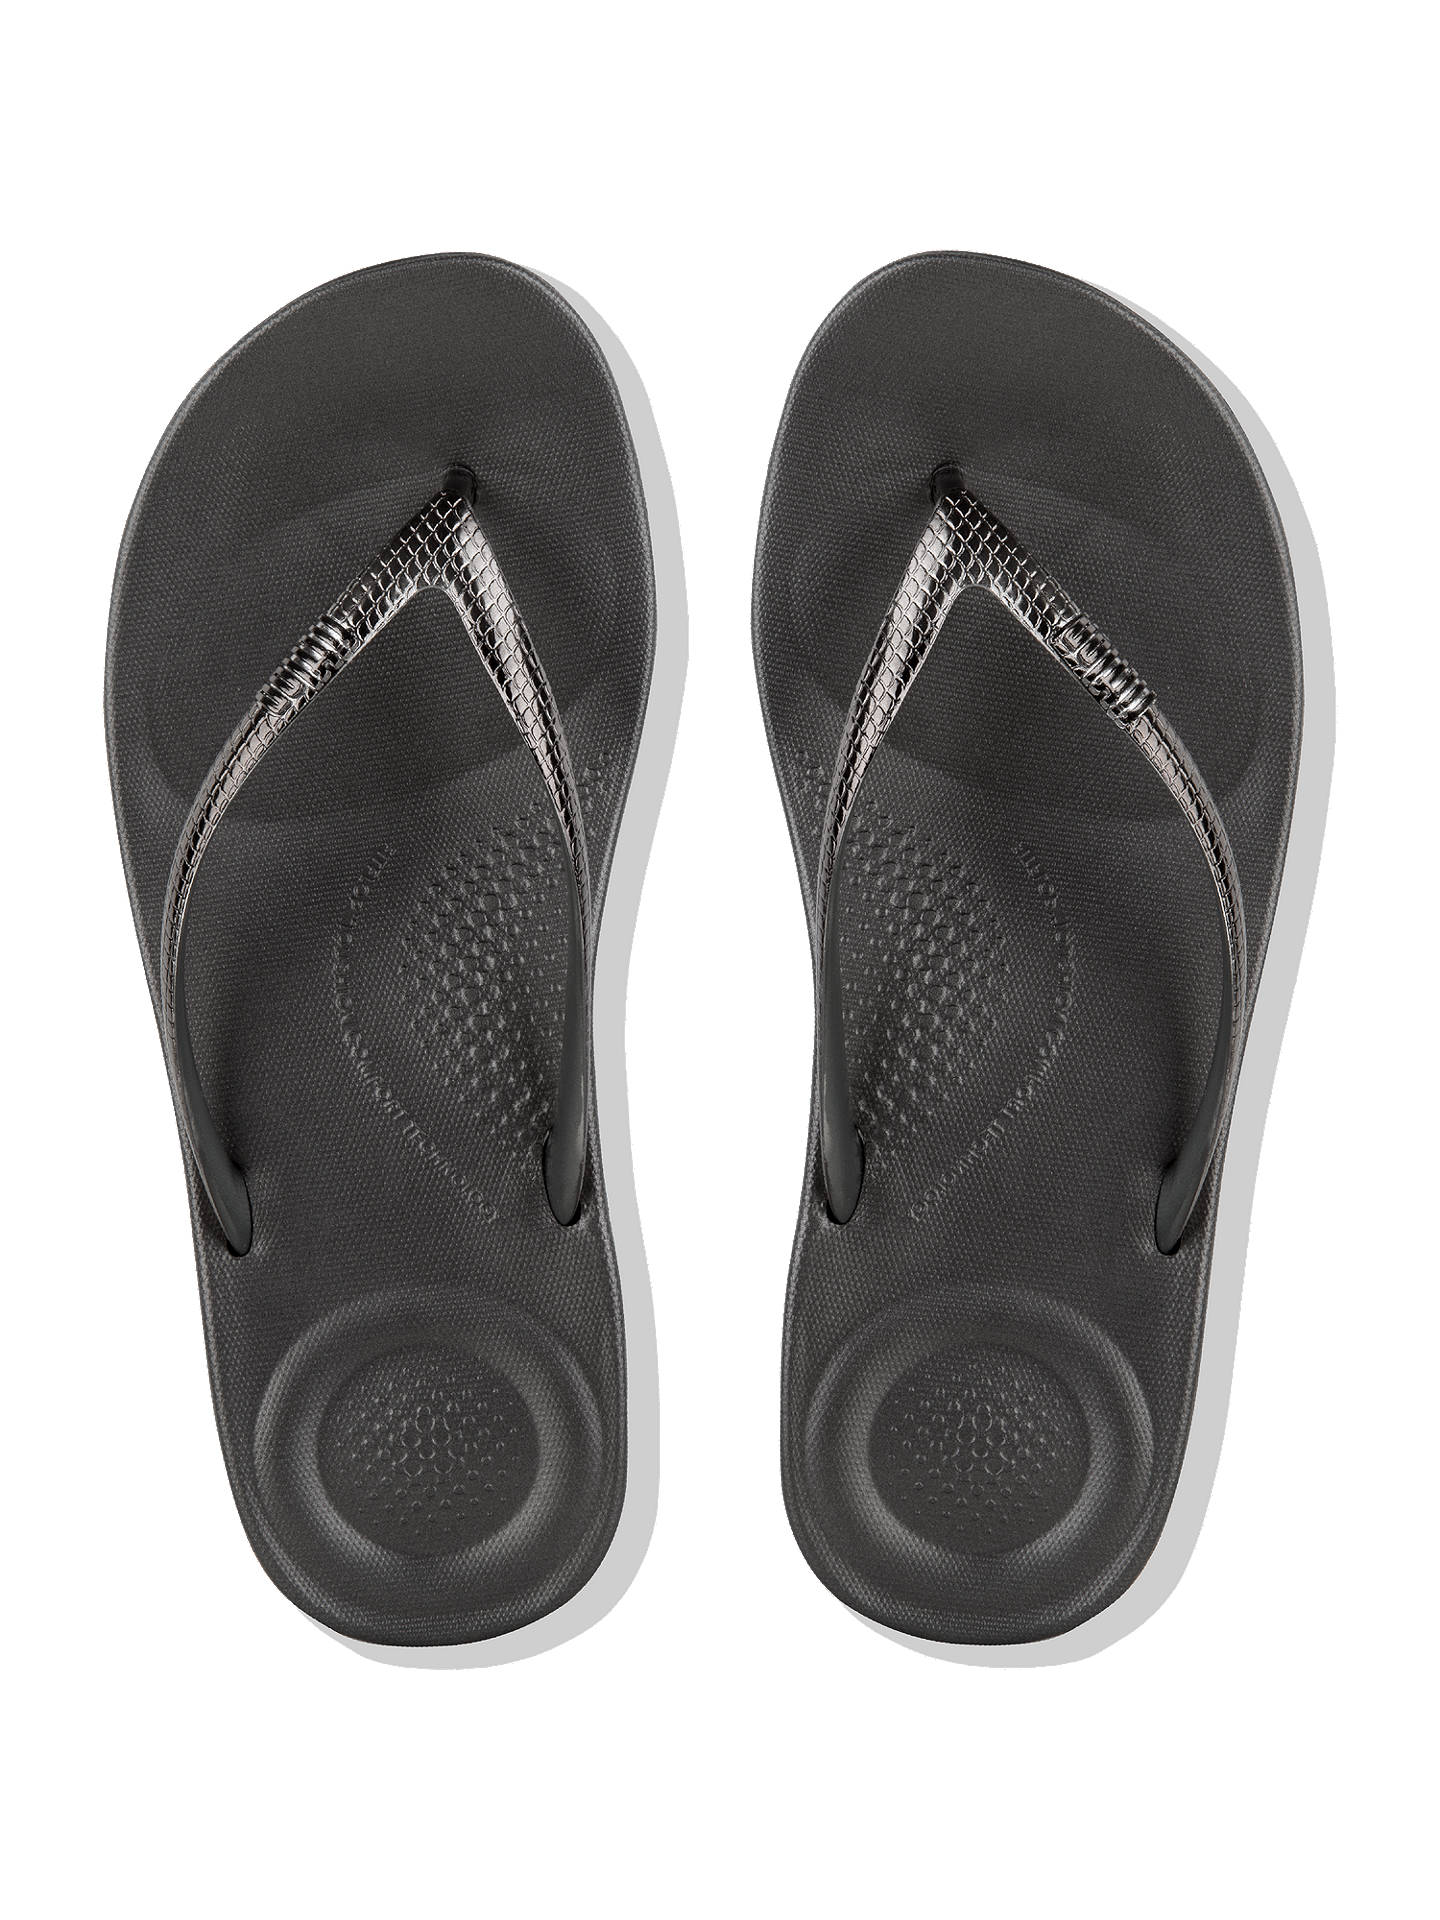 b51f10191aad FitFlop Iqushion Ergonomic Mirror Flip Flops at John Lewis   Partners